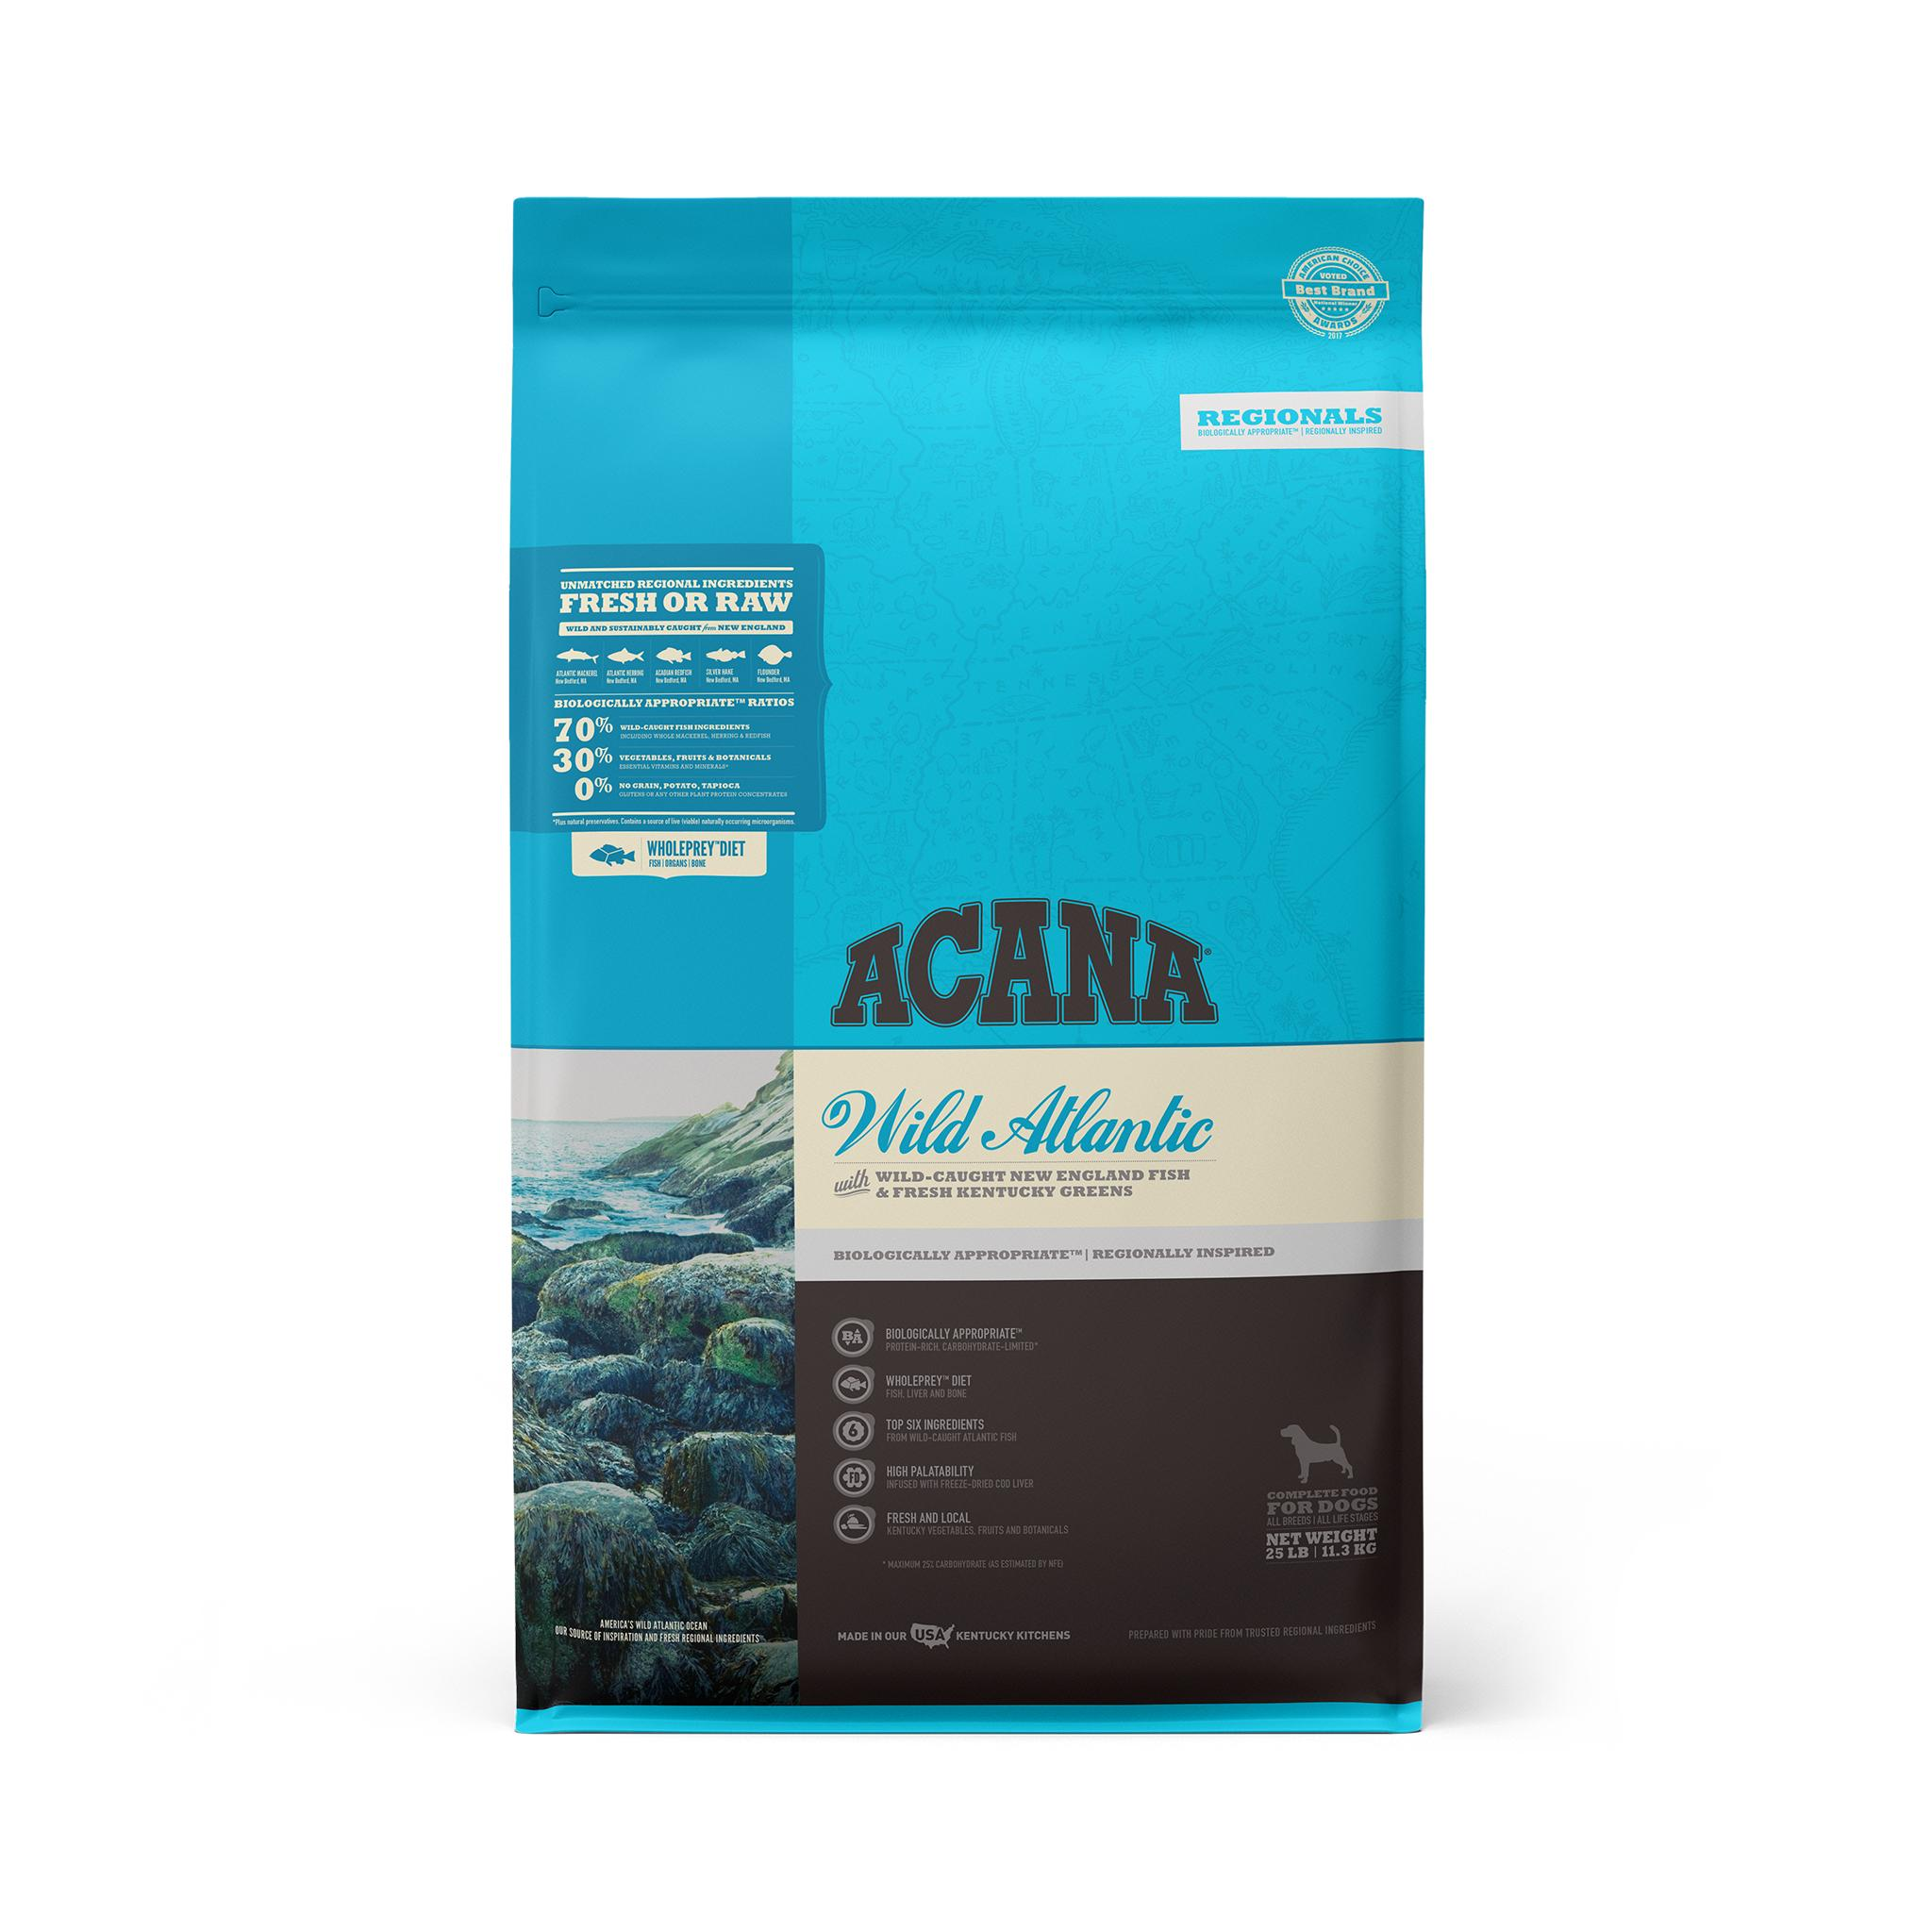 ACANA Regionals Wild Atlantic Grain-Free Dry Dog Food, 25-lb